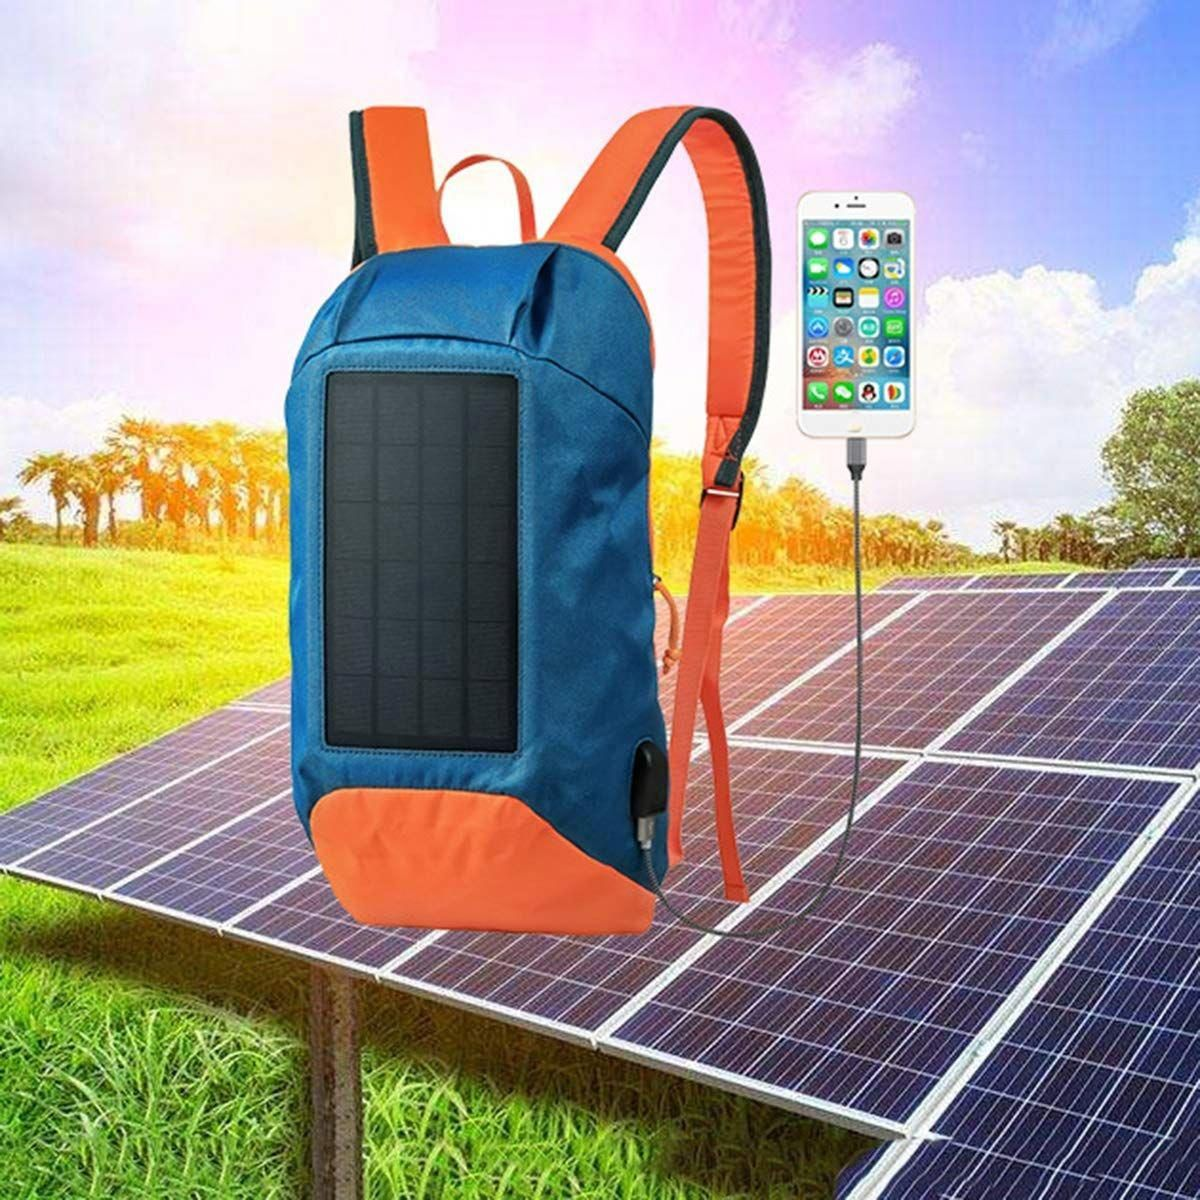 Solar Bag Unique Backpack Made Colourful No Need To Carry Power Bank To Charge Devices Outside The Most Efficient Solar Cell In The Market Used To Provide 2 In 2020